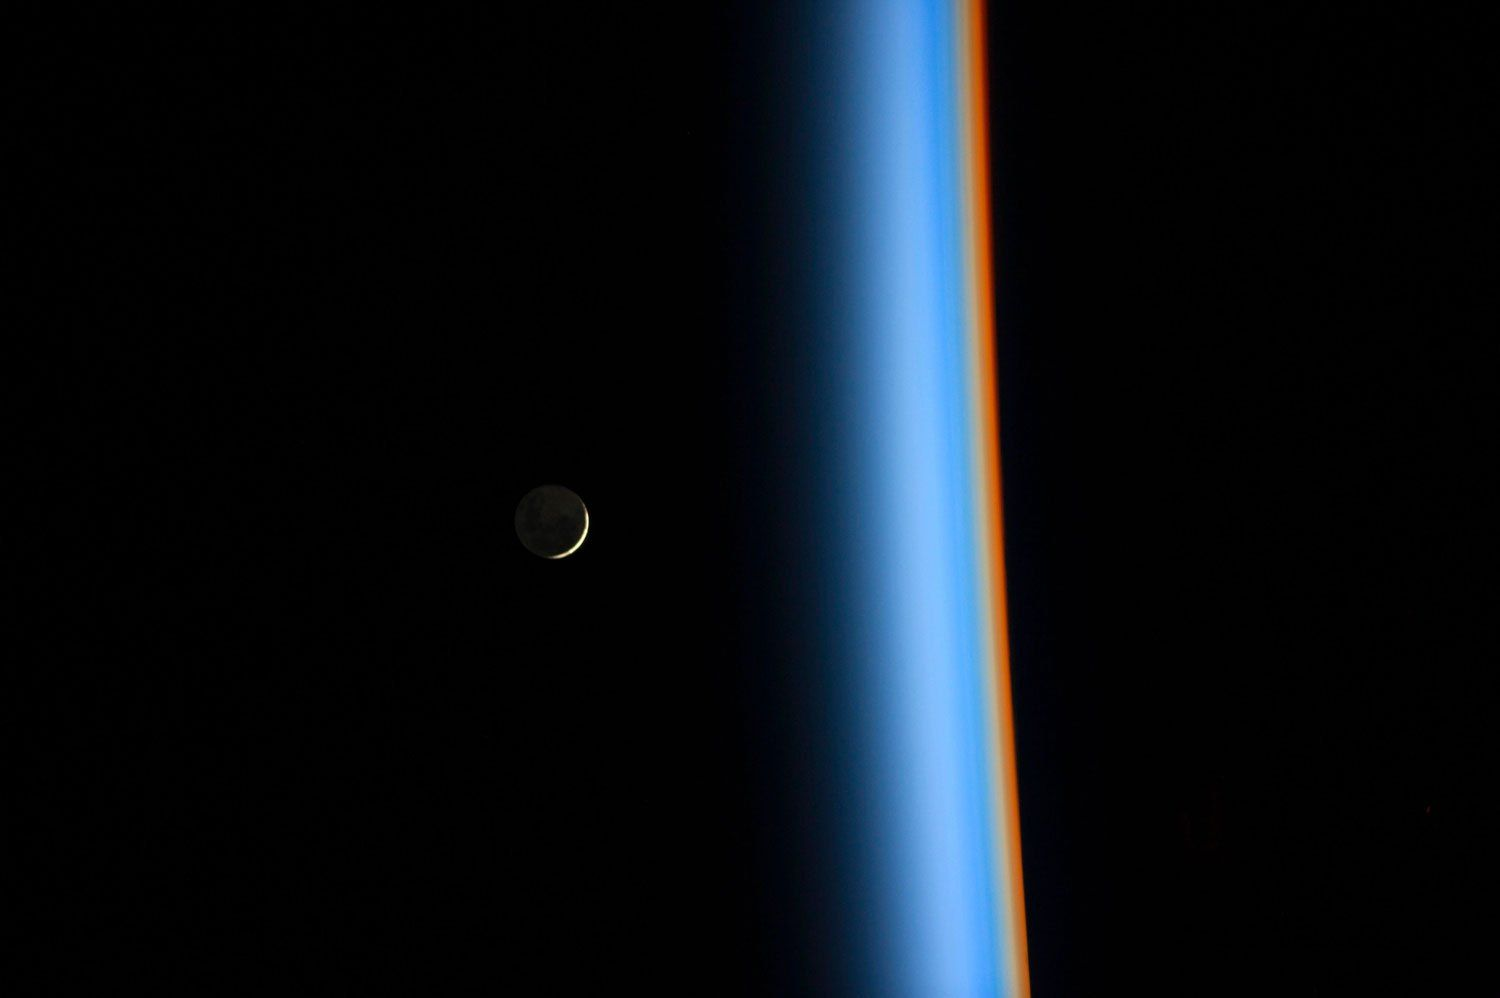 A crescent moon rises over the cusp of the Earth's atmosphere in this picture by Japan Aerospace Exploration Agency astronaut Koichi Wa...